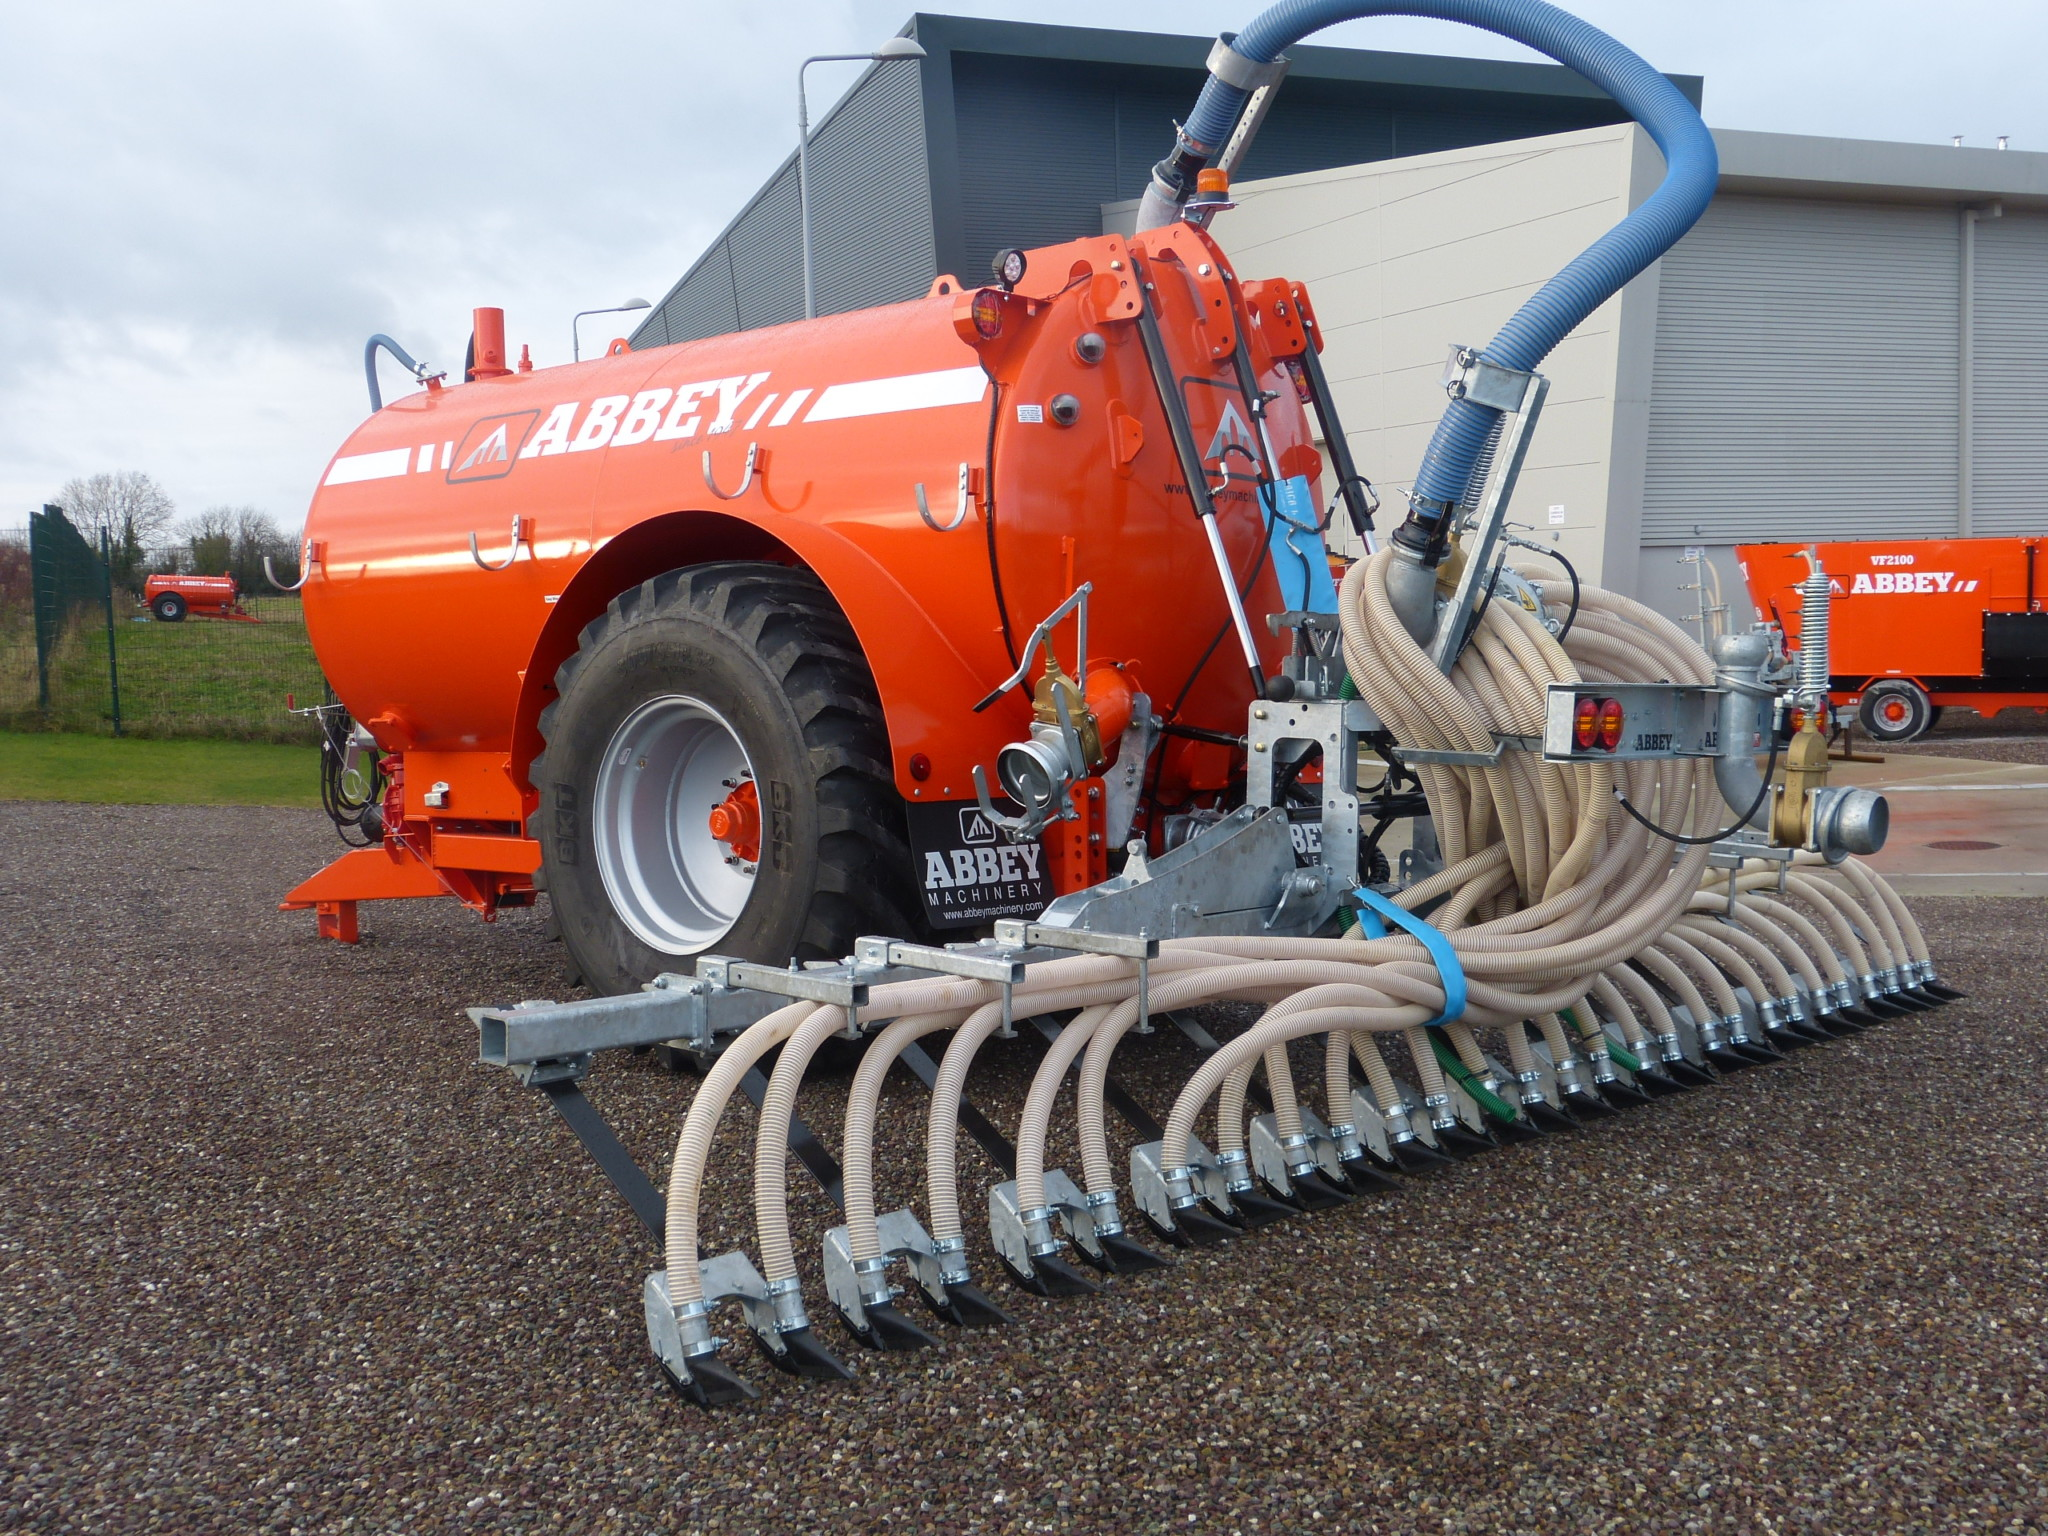 Abbey Slurry Applicator